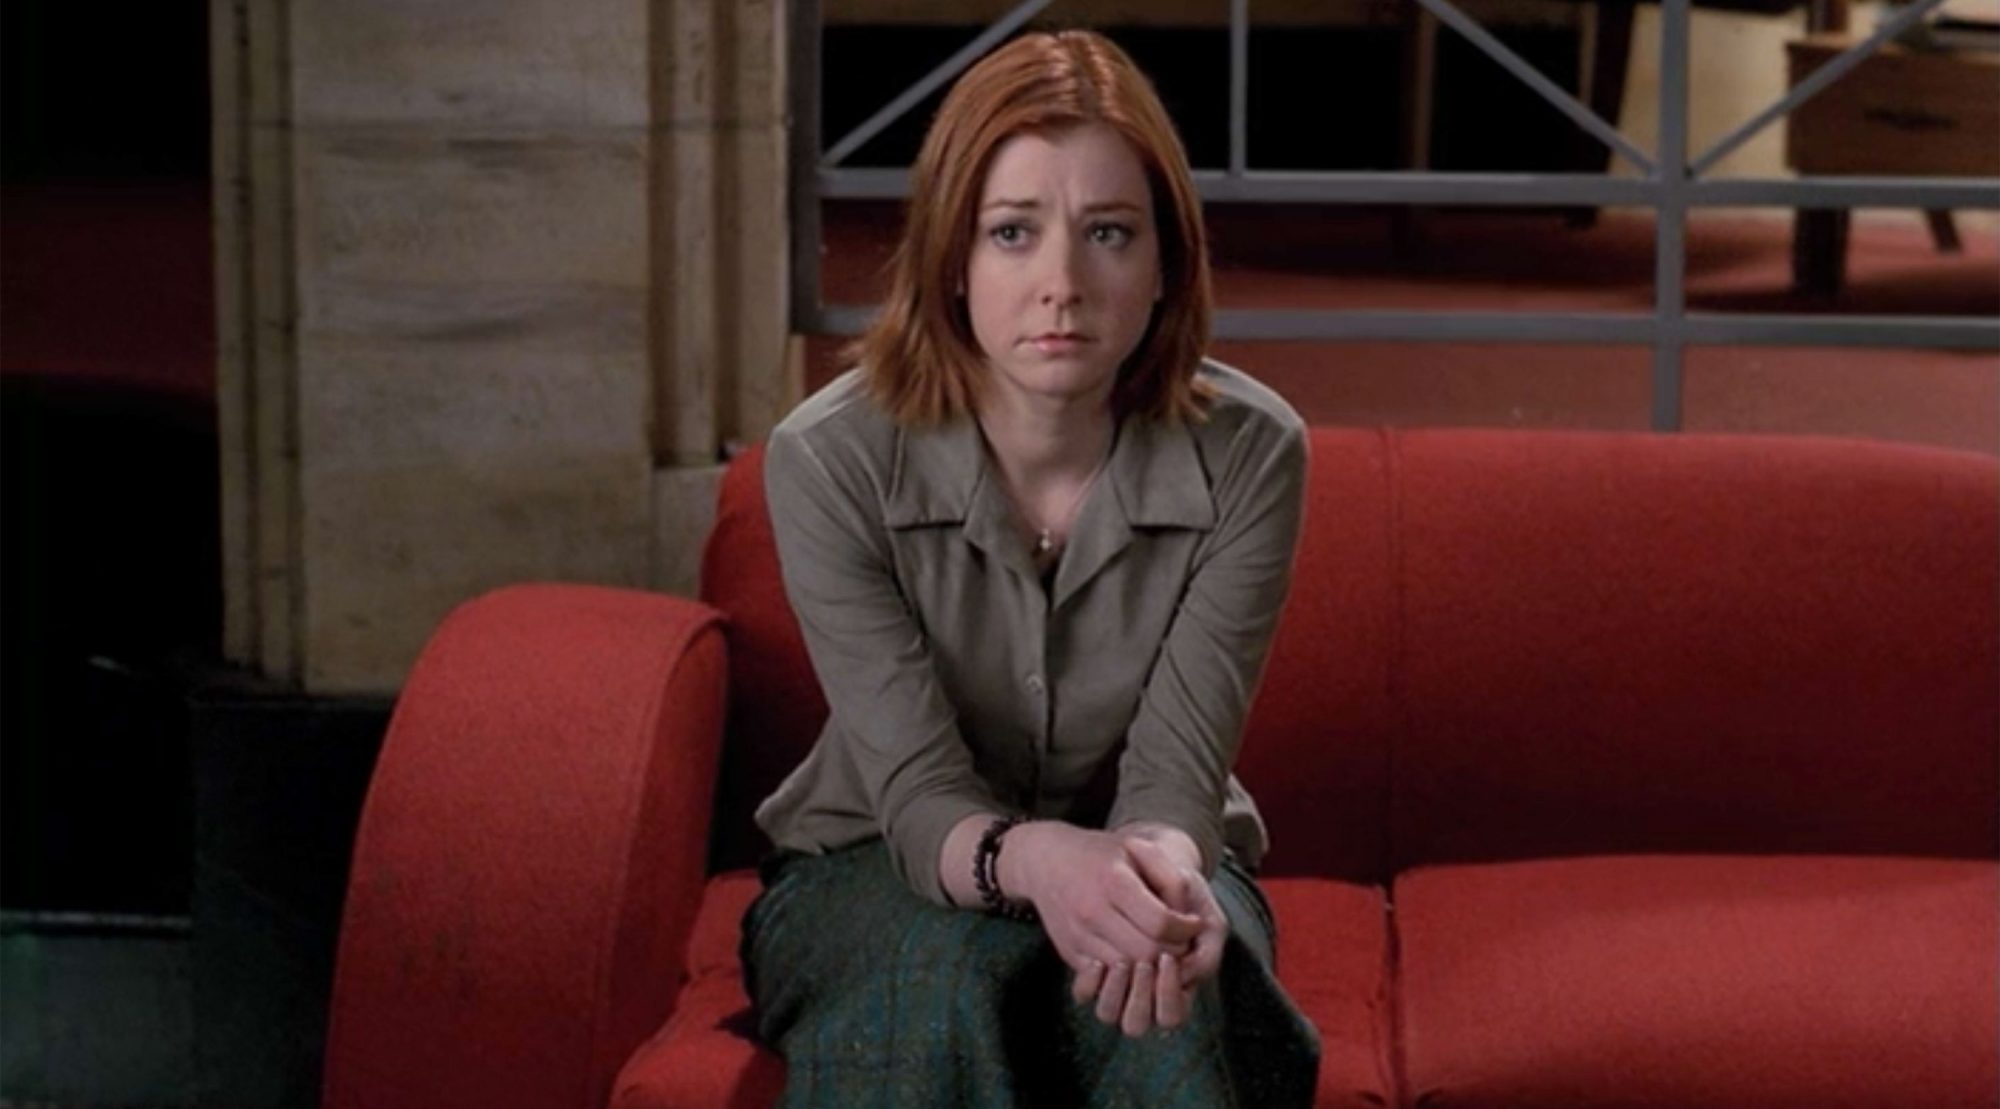 Alyson Hannigan as Willow